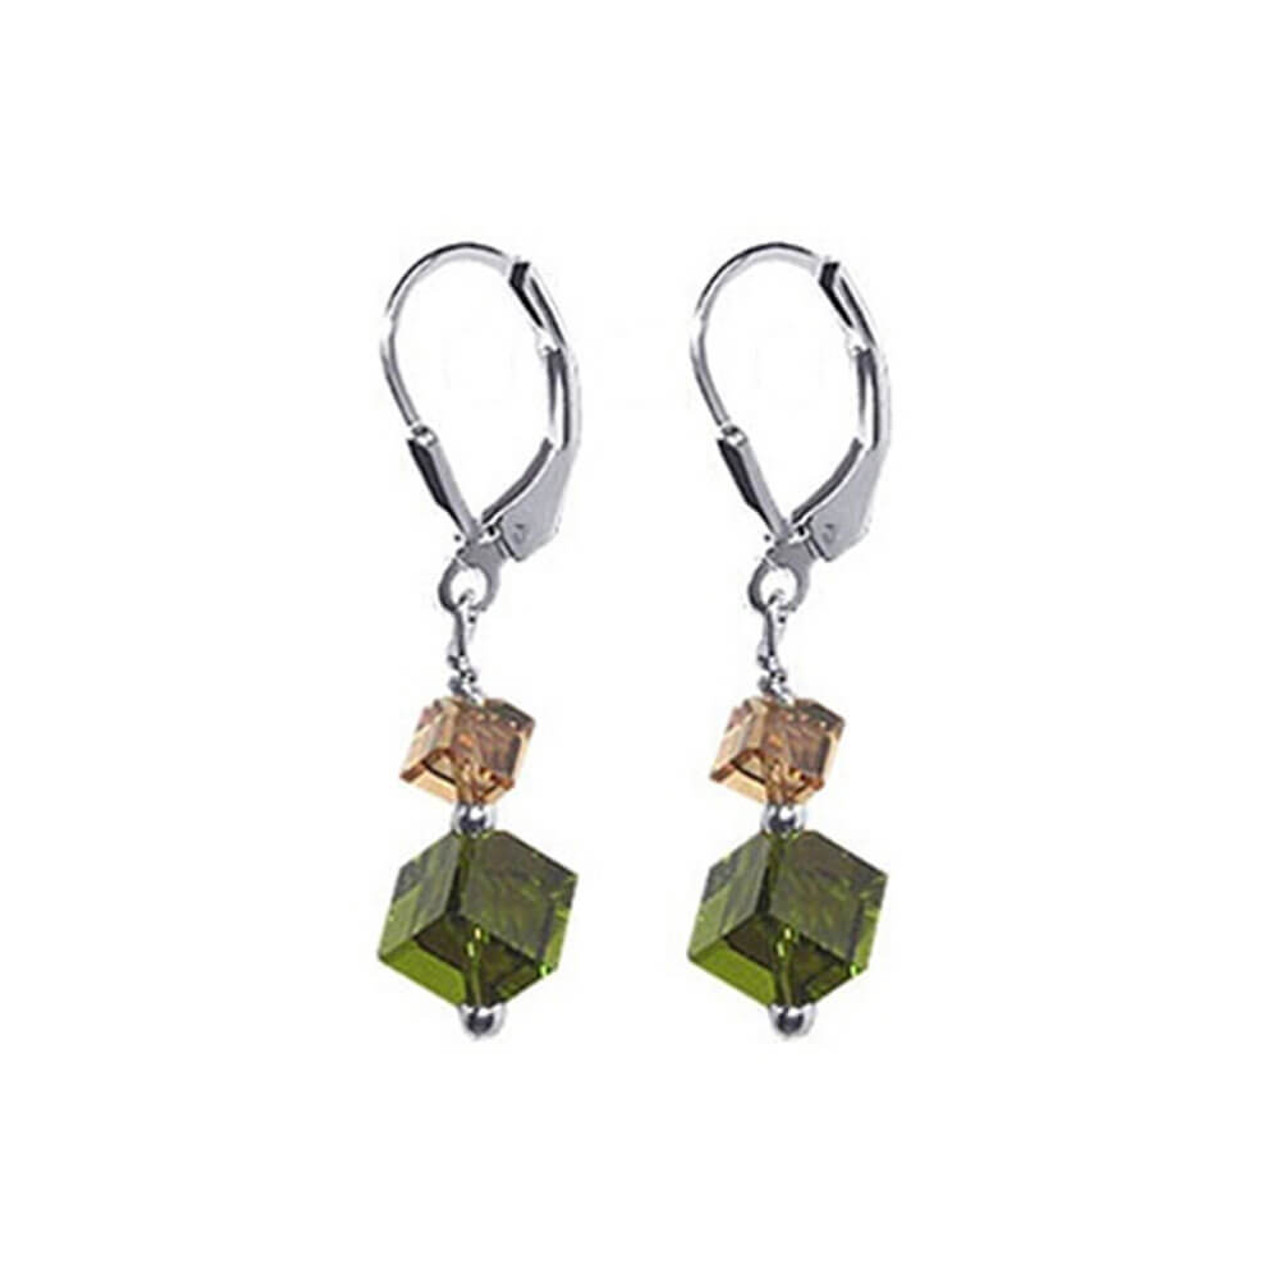 Sterling Silver Made with Swarovski Elements Crystal 1.5 inch Handmade Drop Earrings